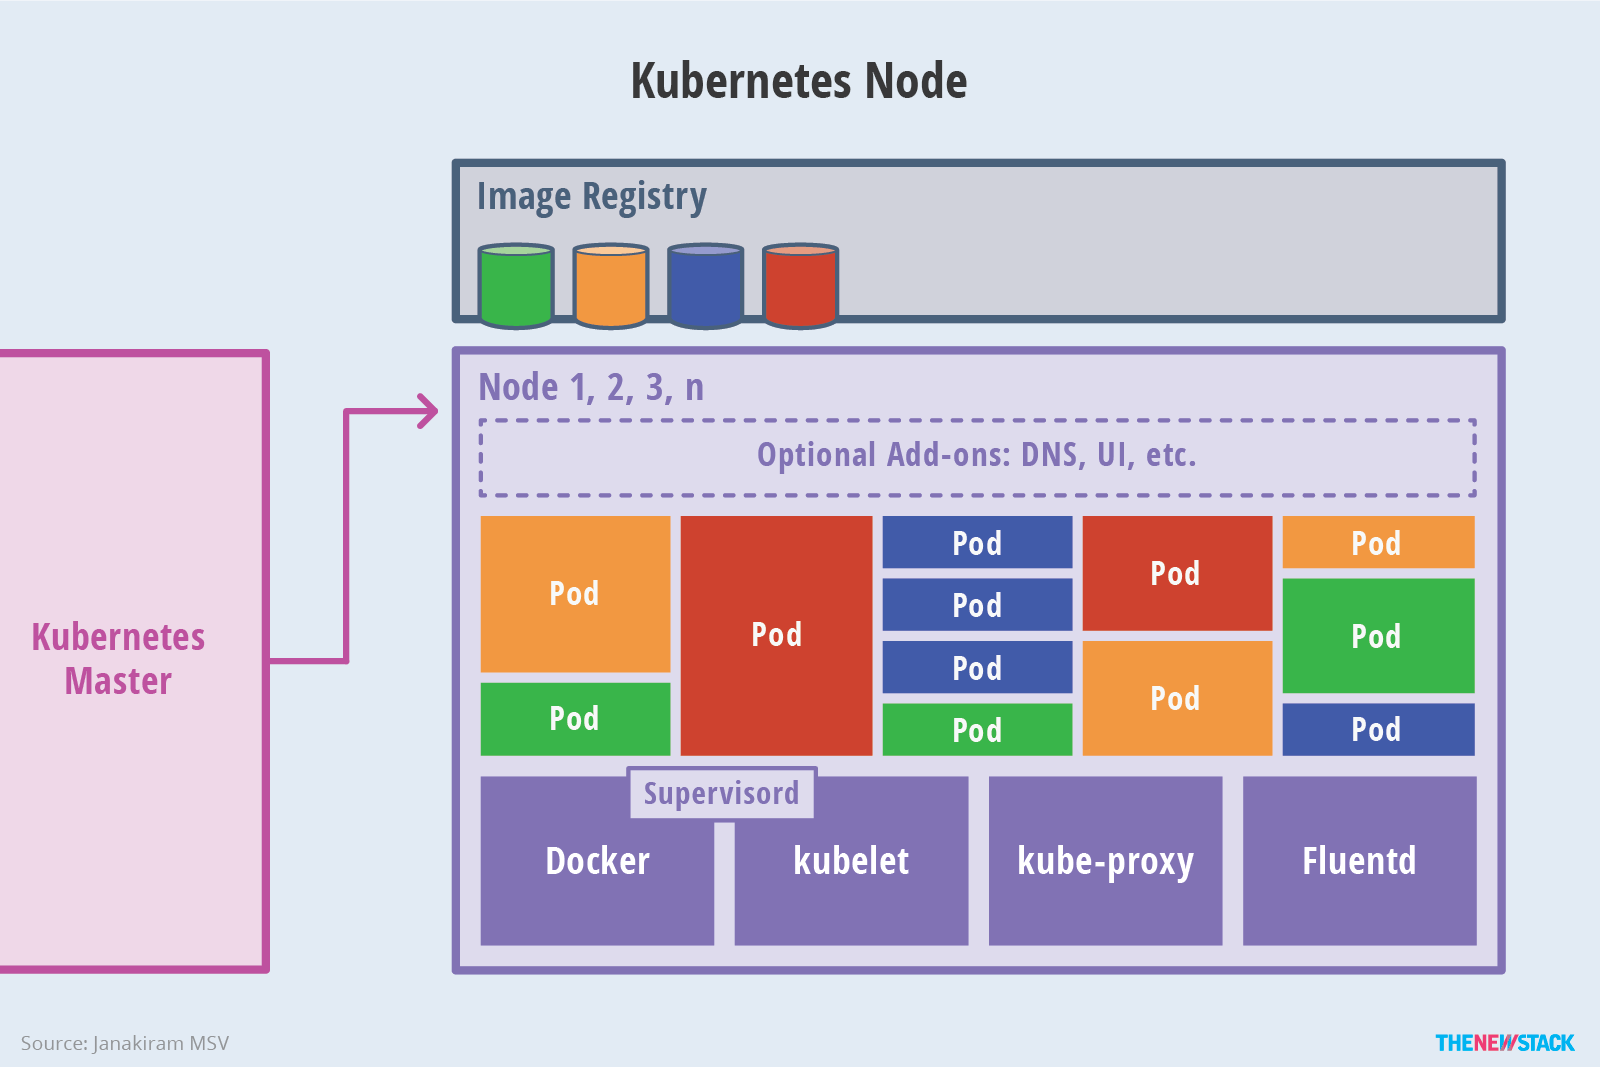 Kubernetes architecture - the worker nodes